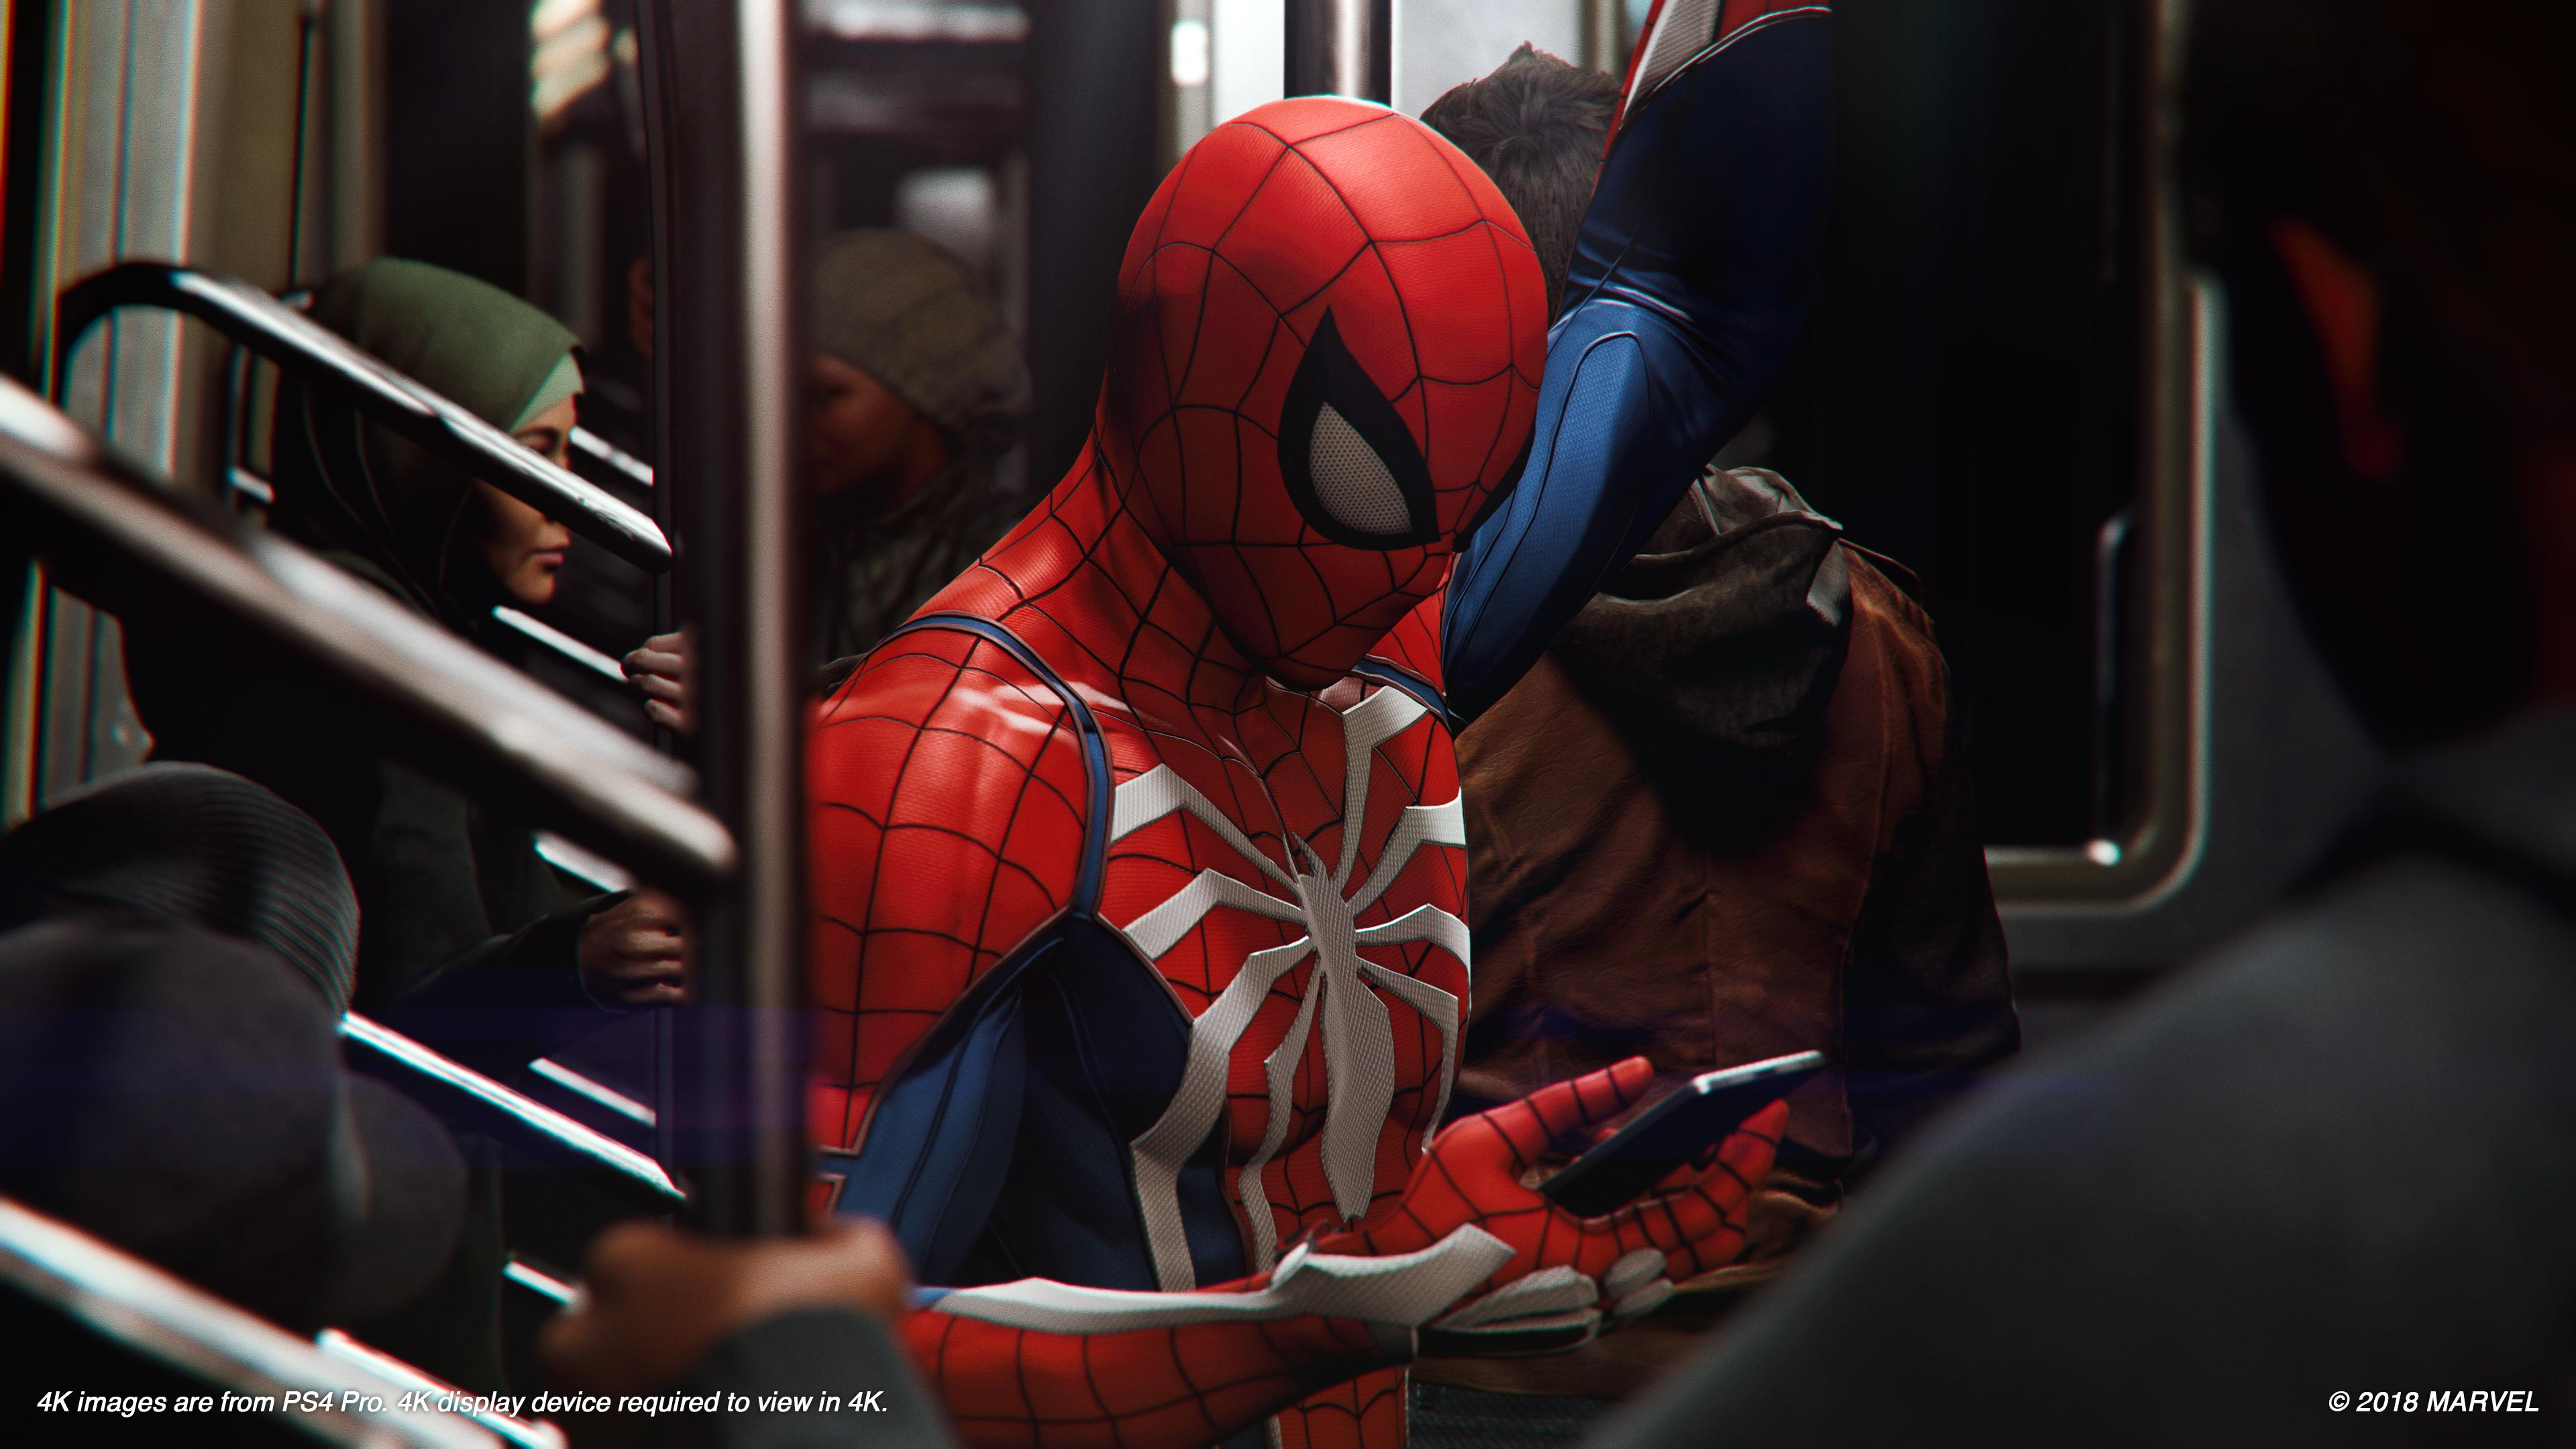 'Marvel's Spider-Man' review: An amazing story and spectacular combat